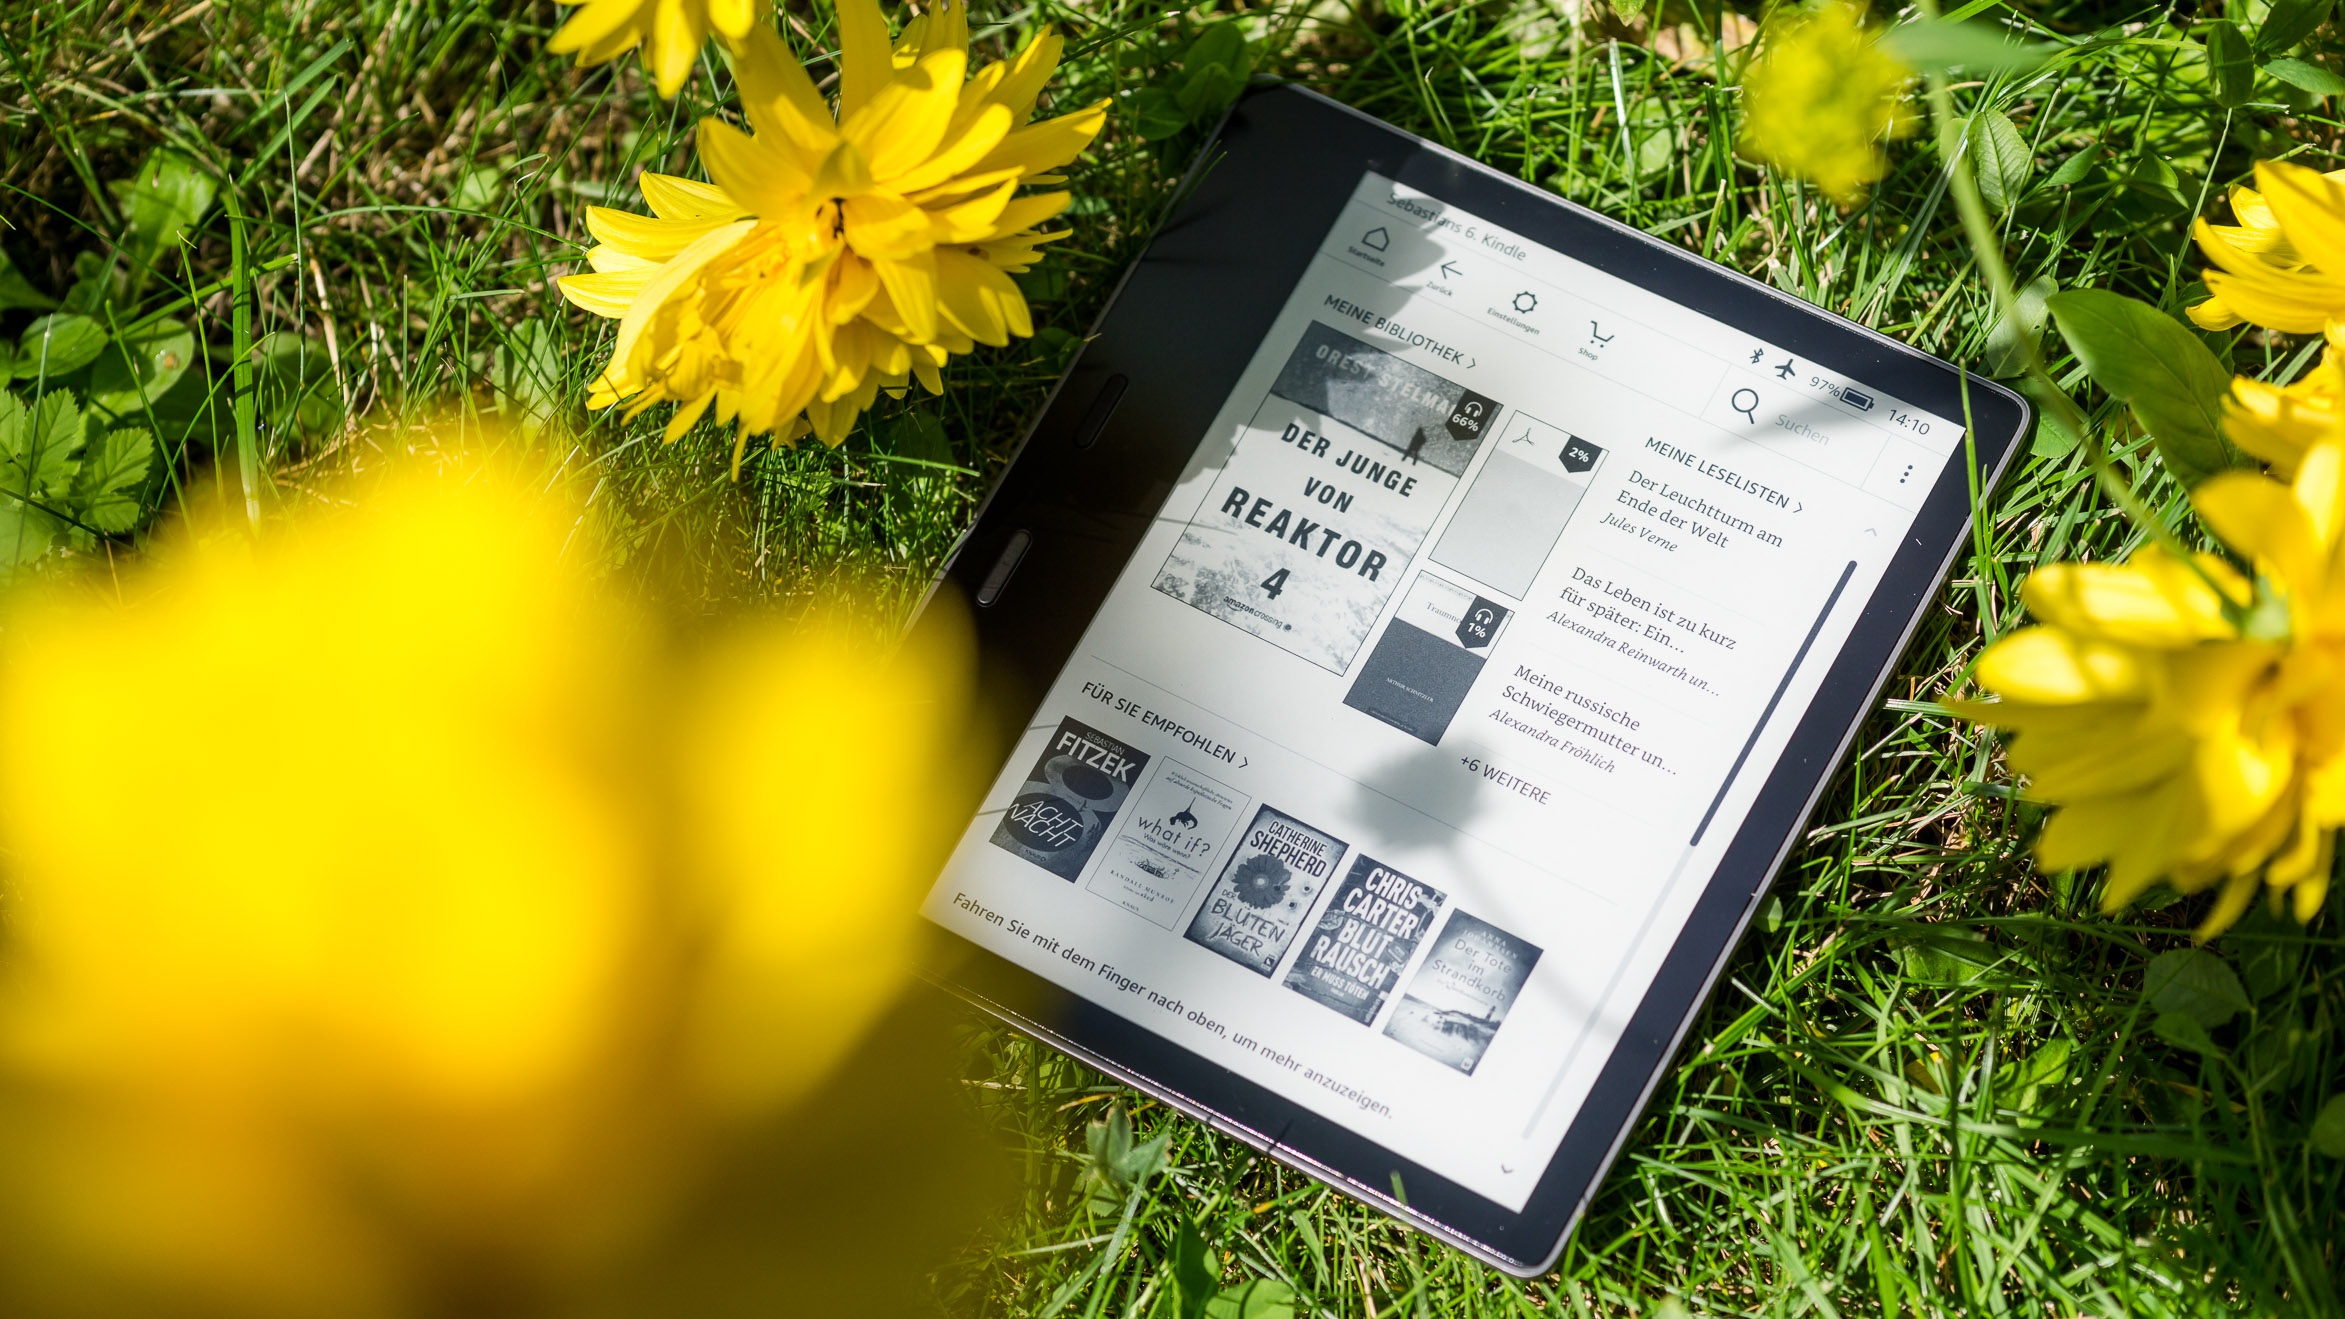 E-Book-Reader Kindle Oasis im Test: Wo Amazons Spitzenmodell spitze ist